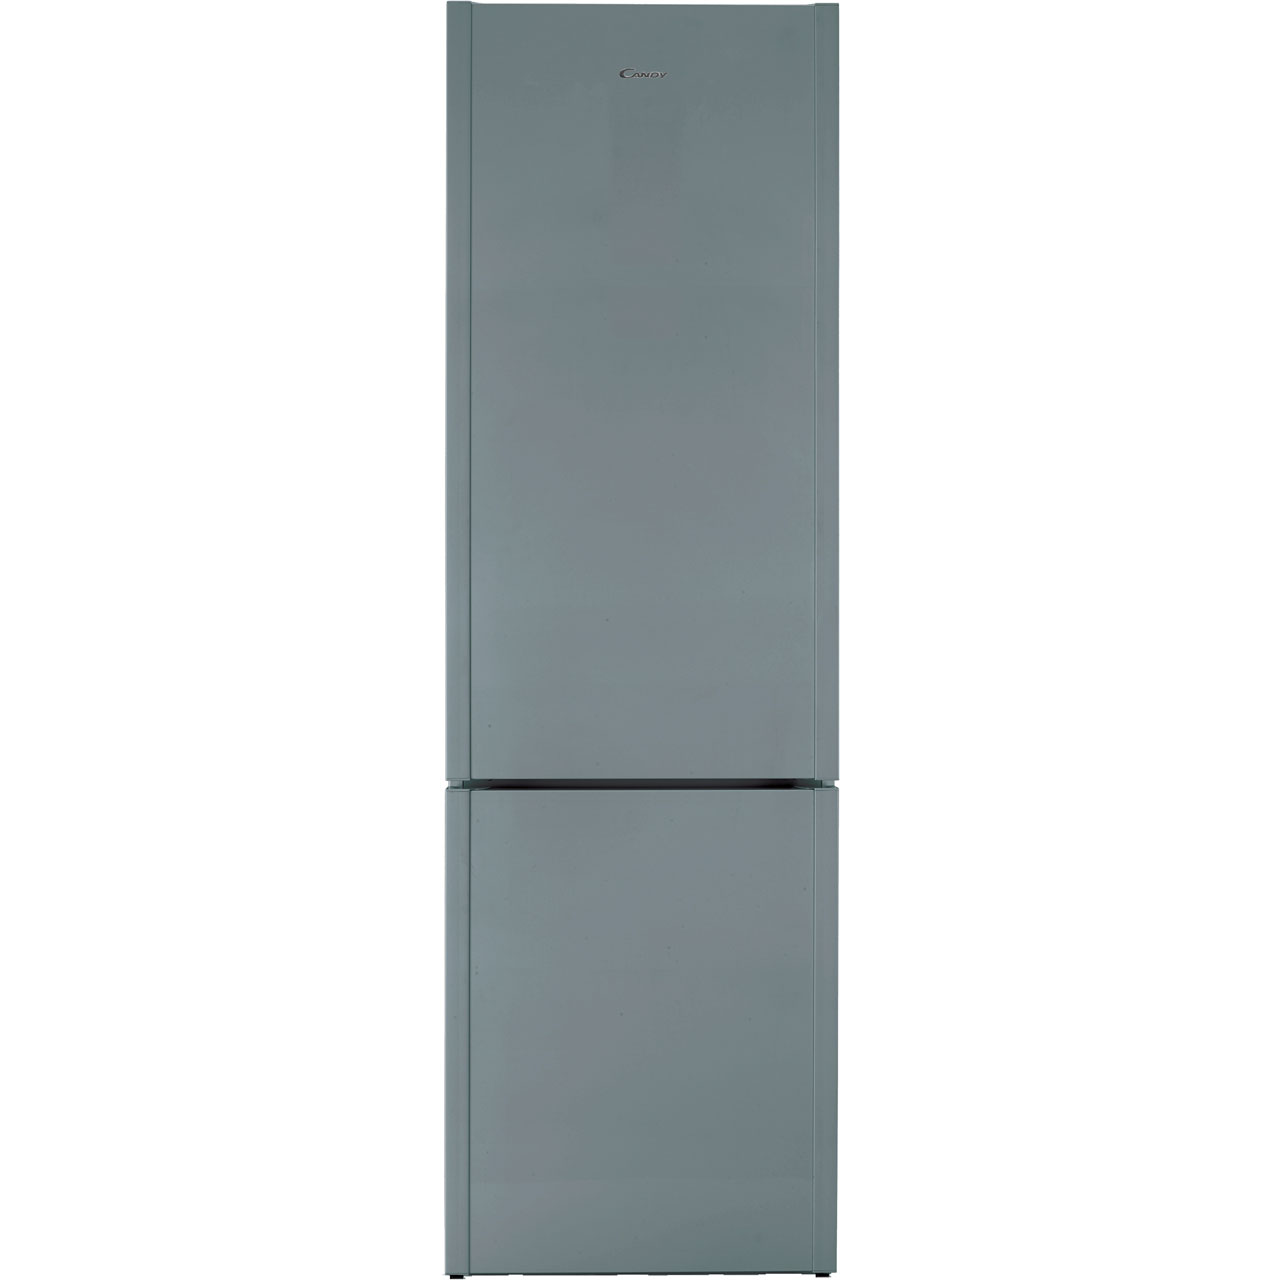 Candy CCPF6182X Free Standing Fridge Freezer Frost Free in Stainless Steel